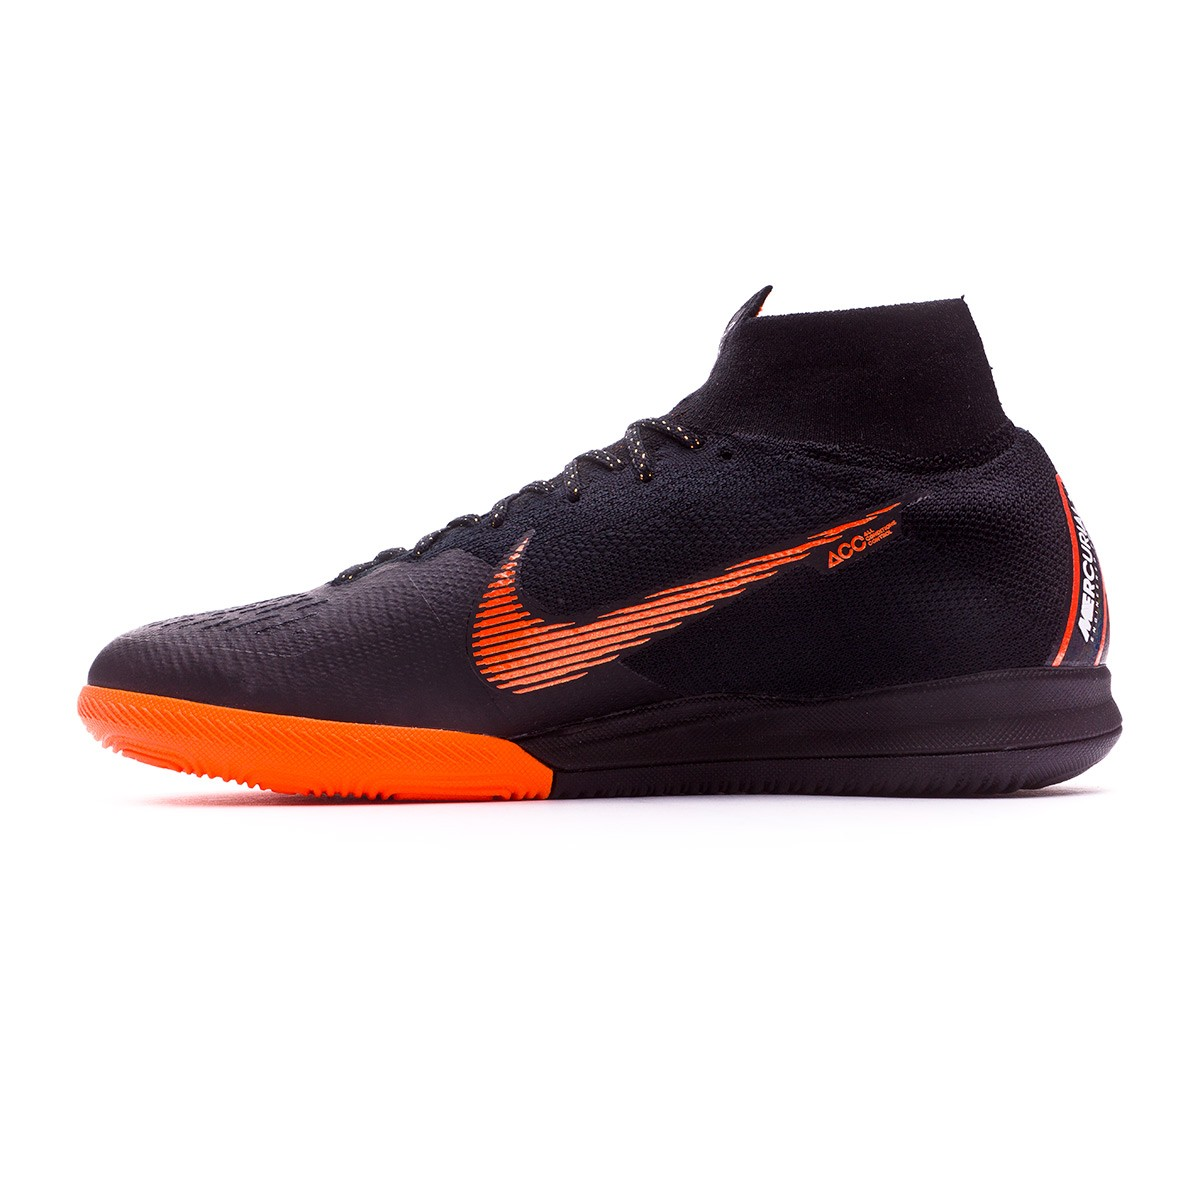 Sapatilha de Futsal Nike Mercurial SuperflyX VI Elite IC